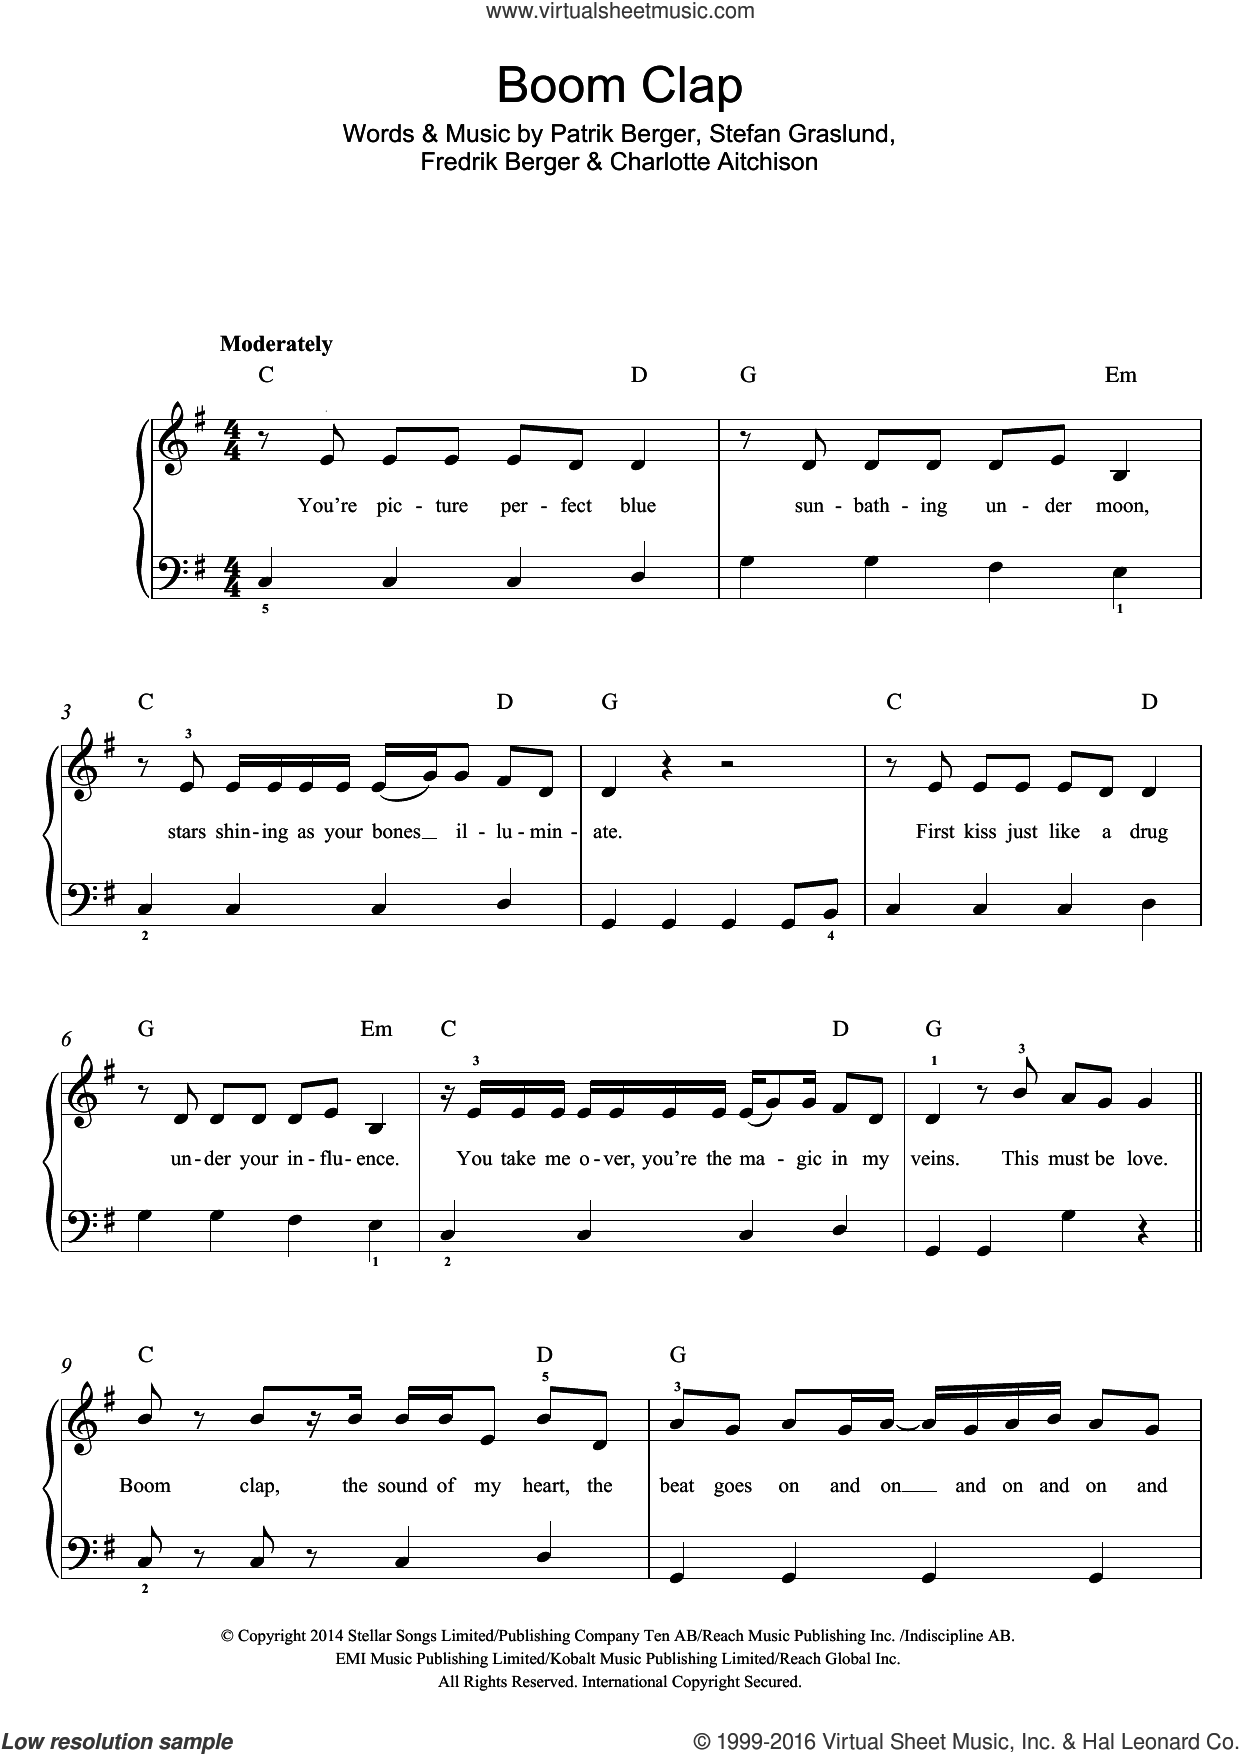 Boom Clap sheet music for piano solo (beginners) by Charli XCX, Charlotte Aitchison, Fredrik Berger, Patrik Berger and Stefan Graslund, beginner piano (beginners)